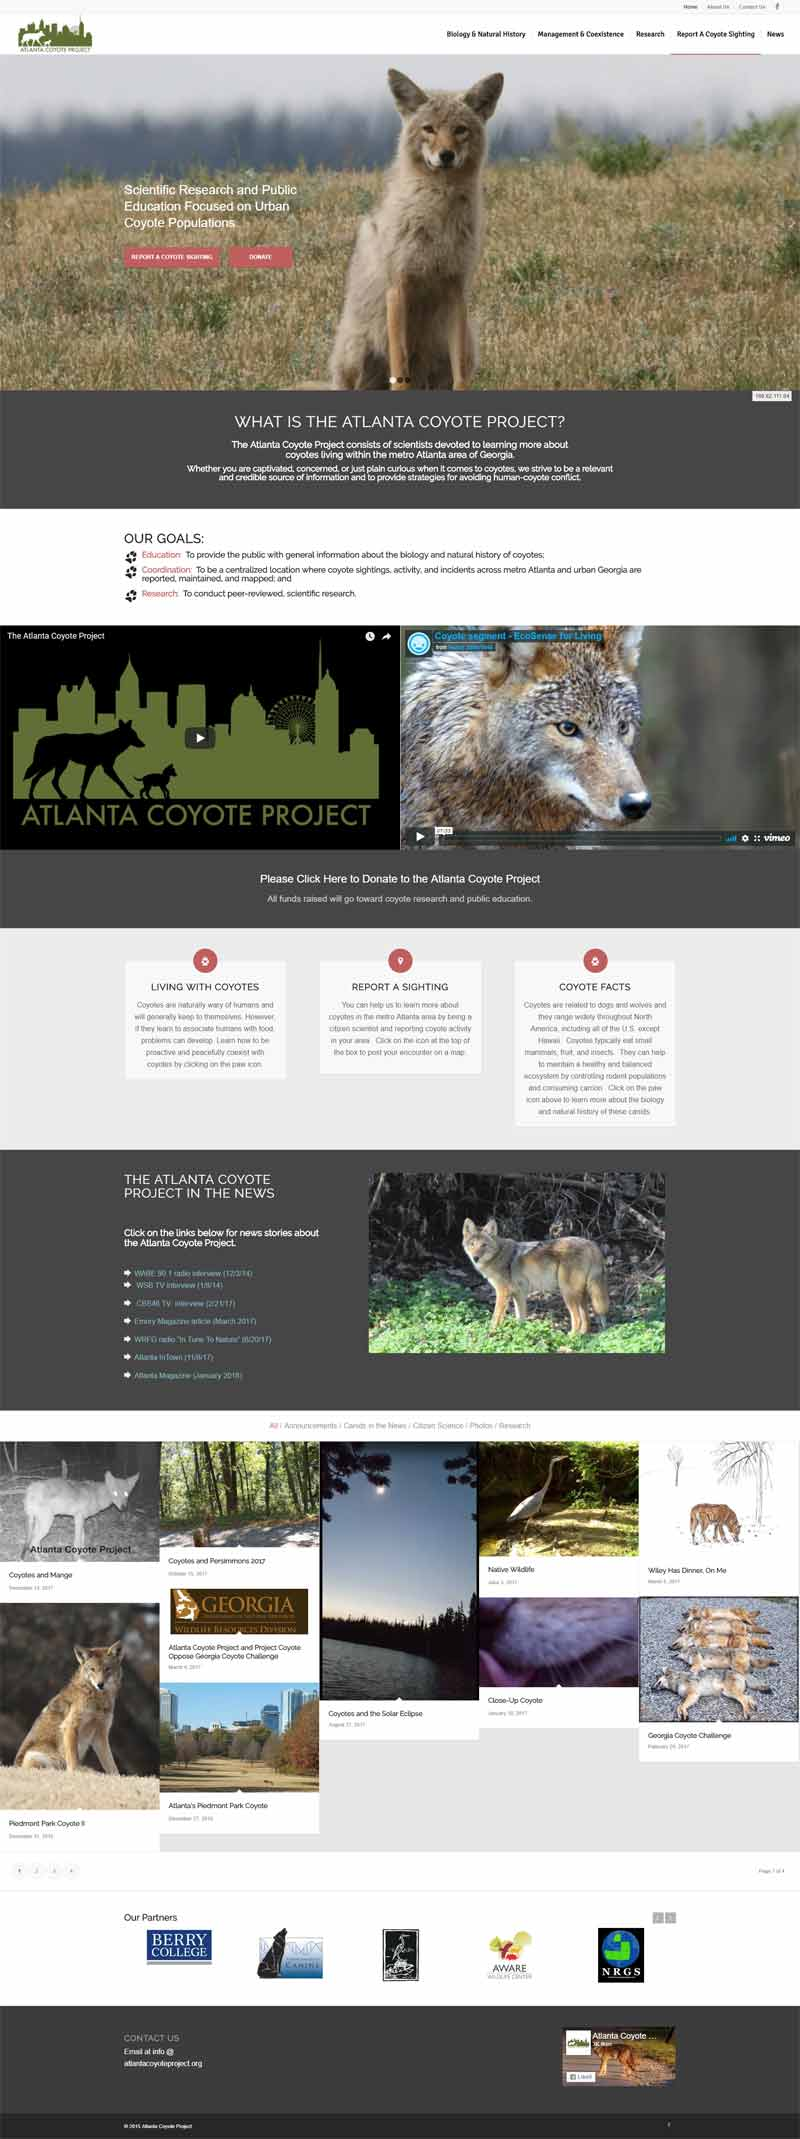 Non Profit Educational Site - Atlanta Coyote Project